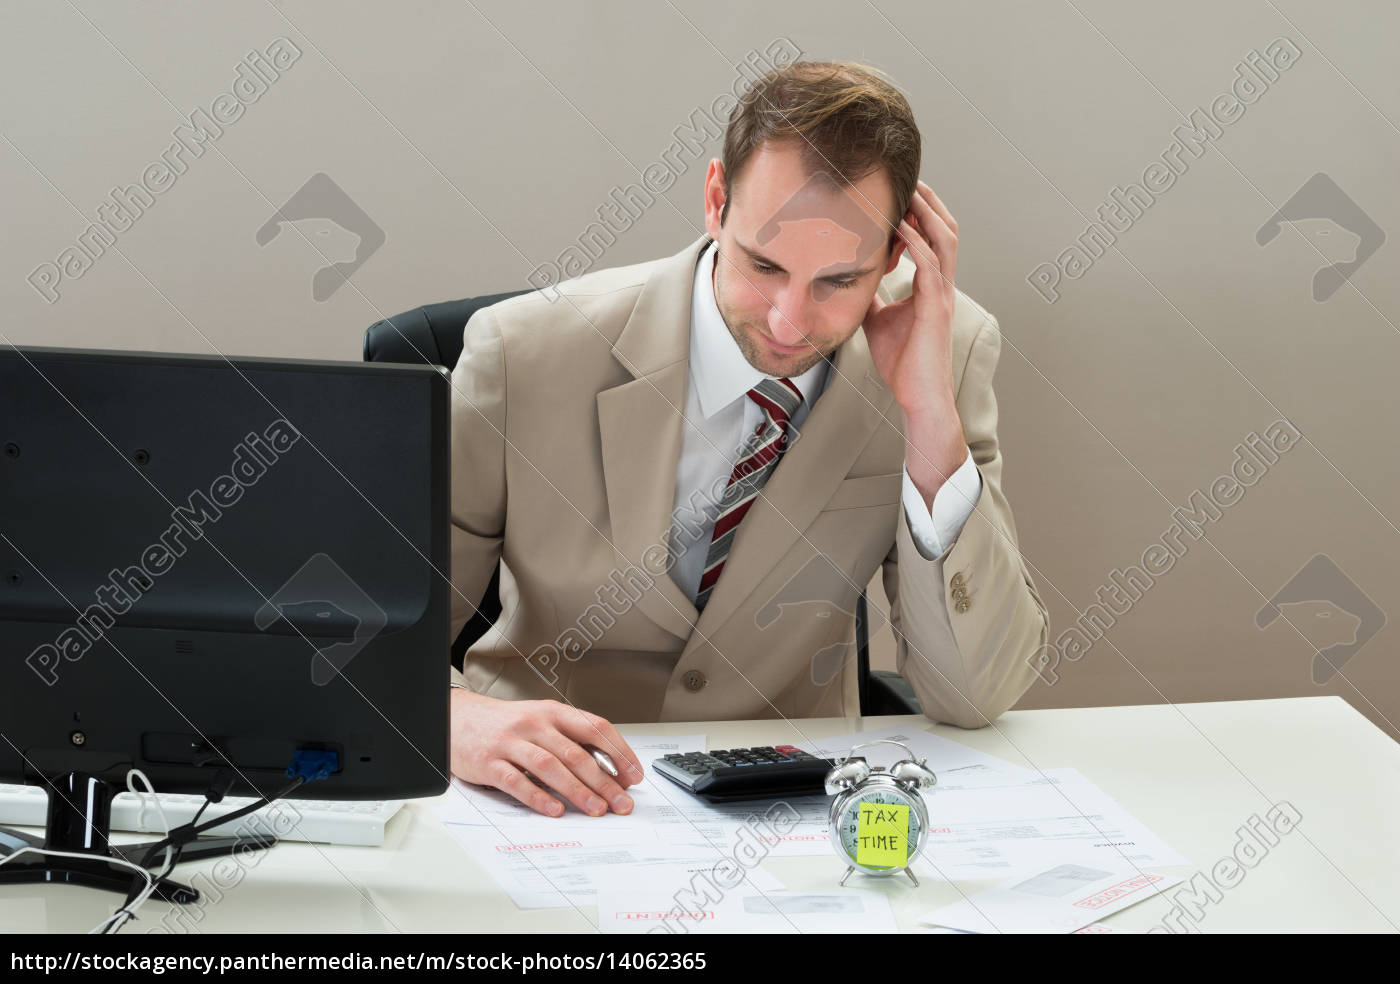 businessman, with, envelop, and, alarm, clock - 14062365